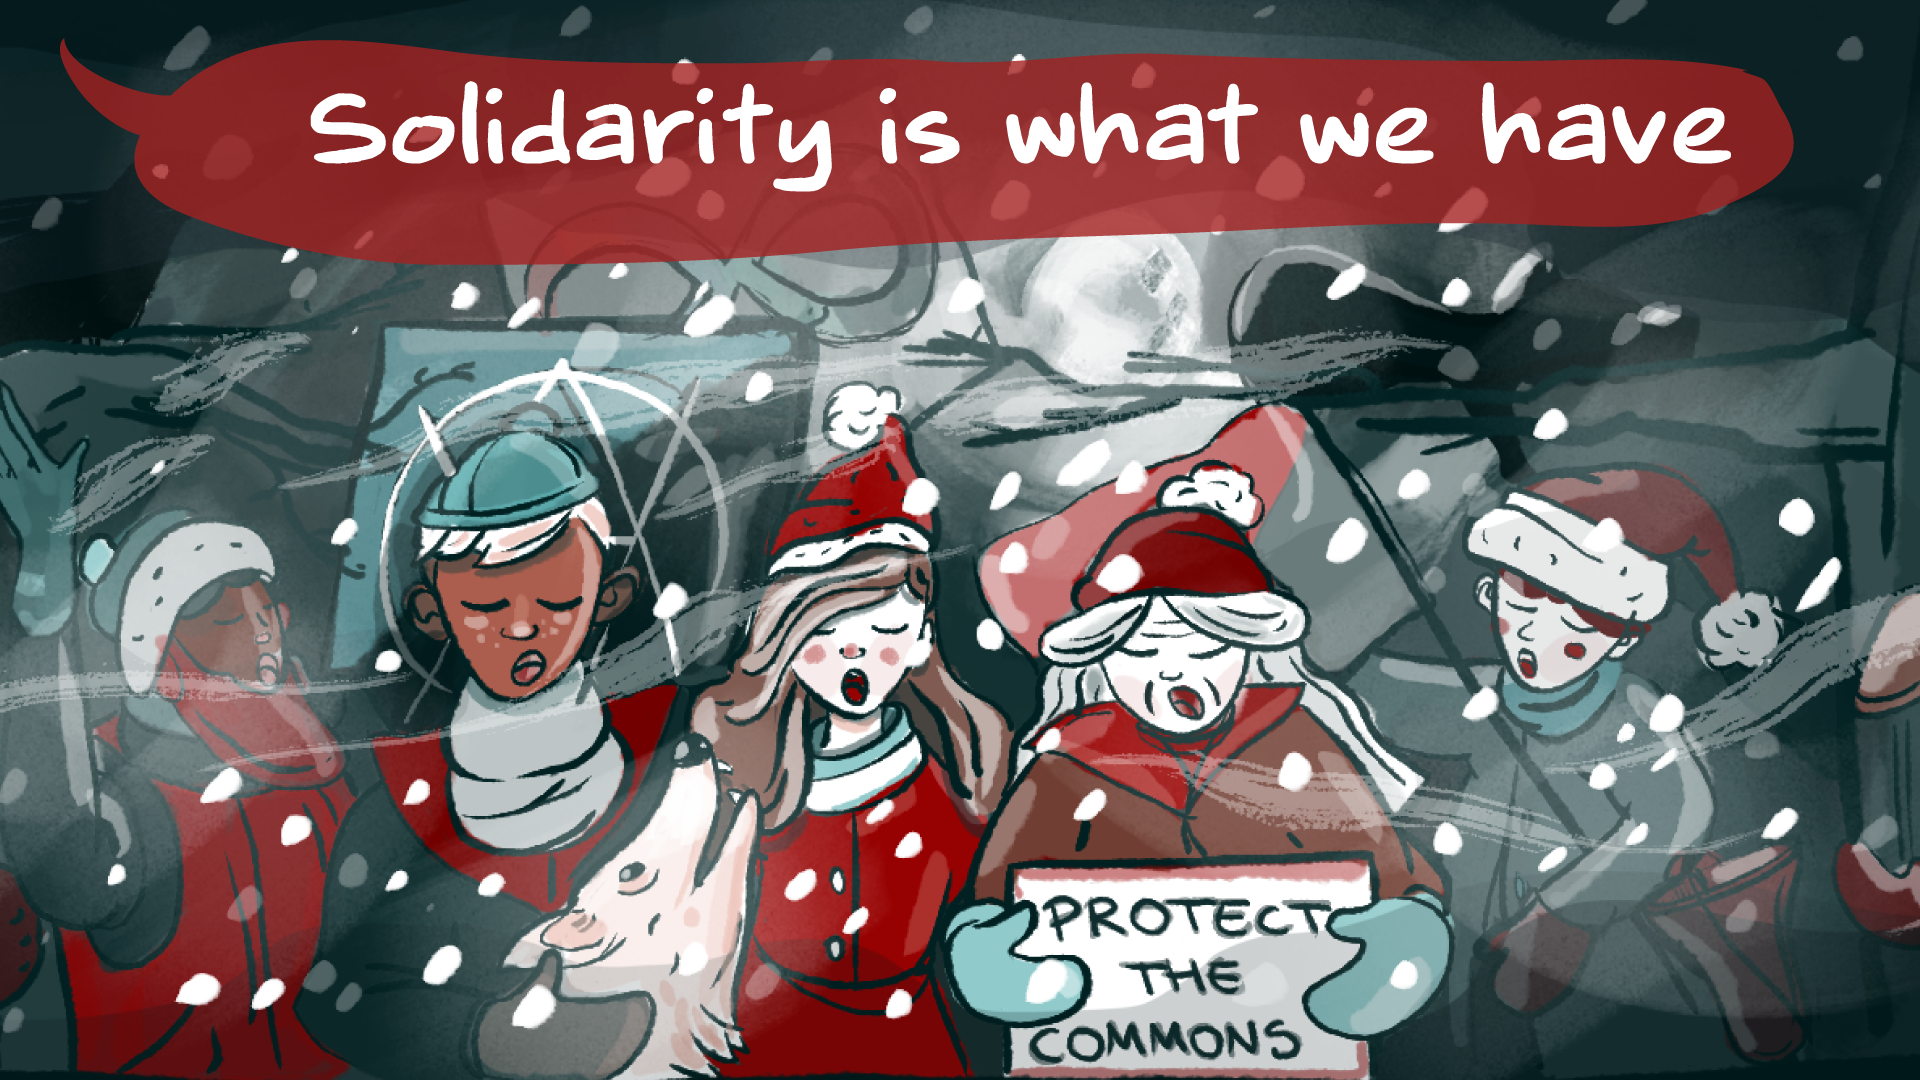 Solidarity is coming to town